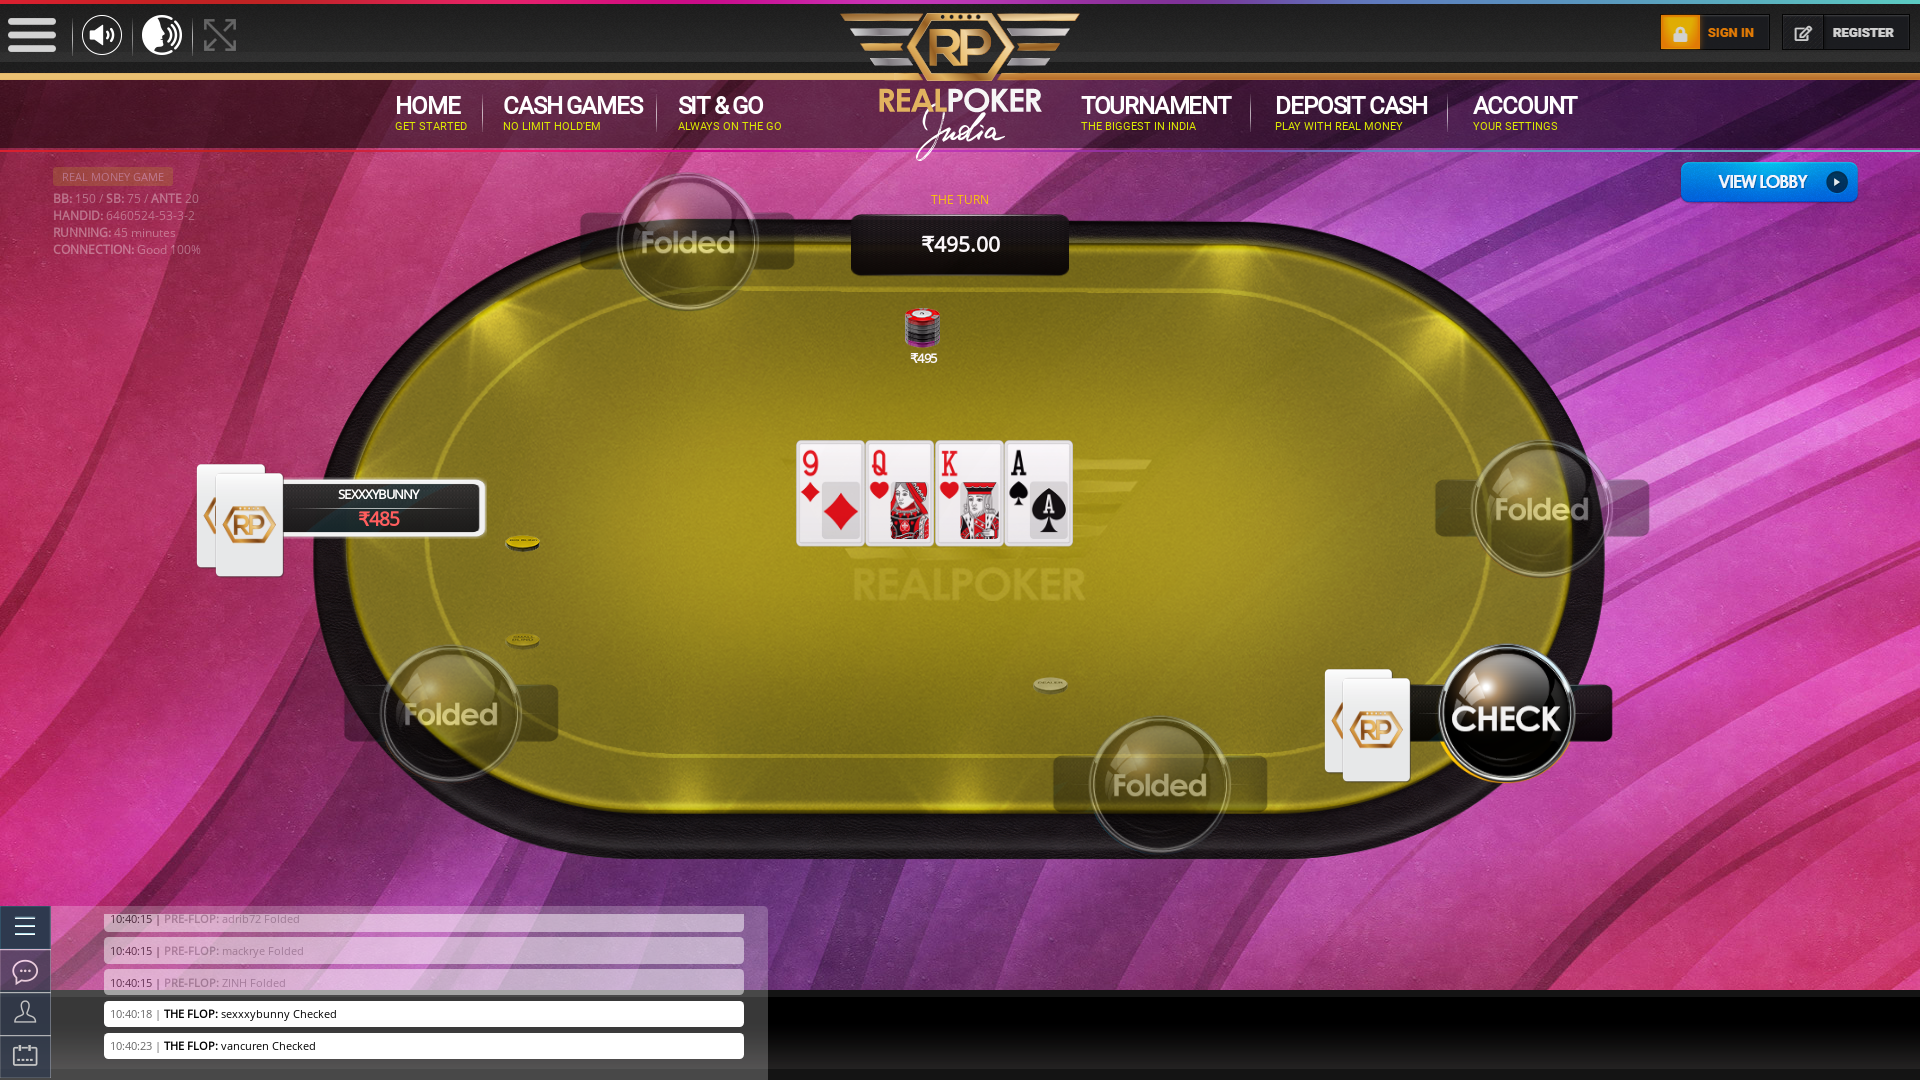 10 player poker in the 45th minute